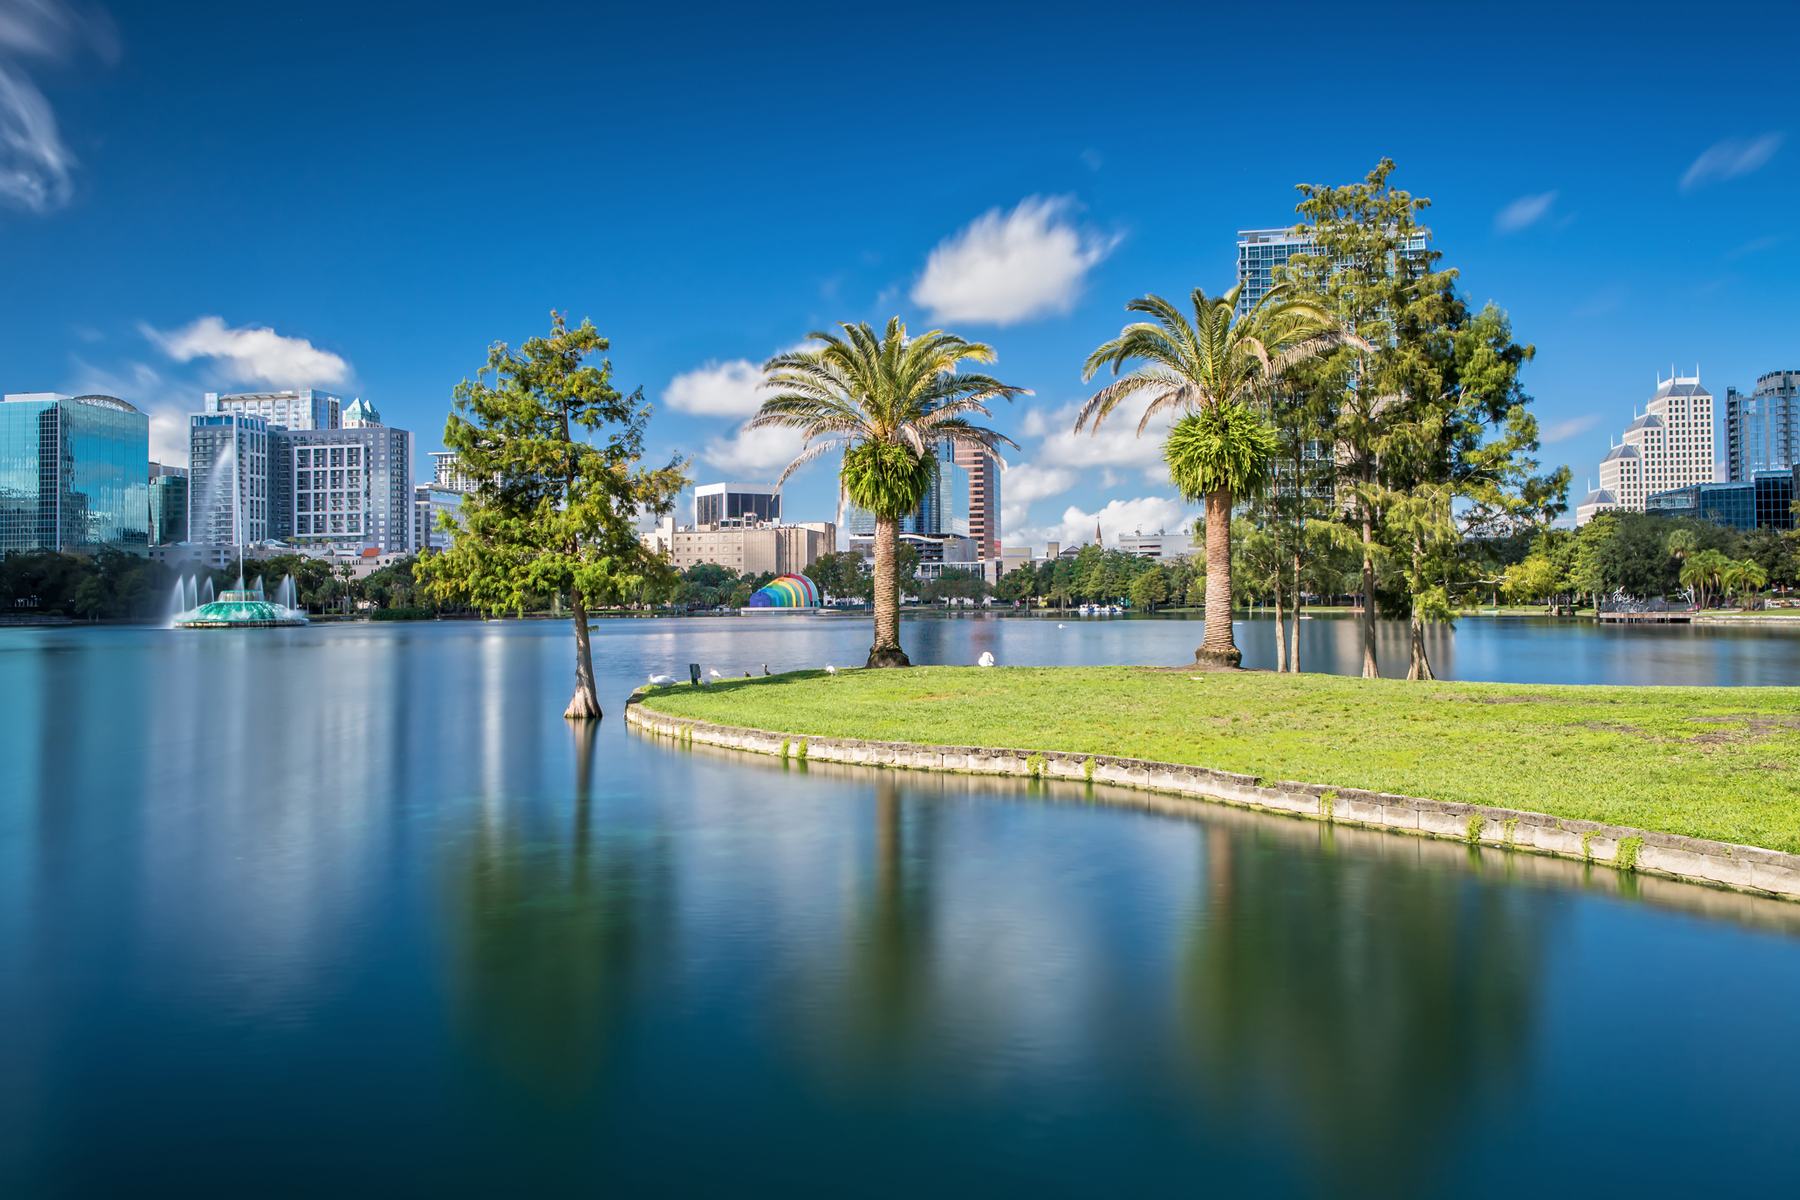 Downtown Orlando from Lake Eola Park on a beautiful sunny Day